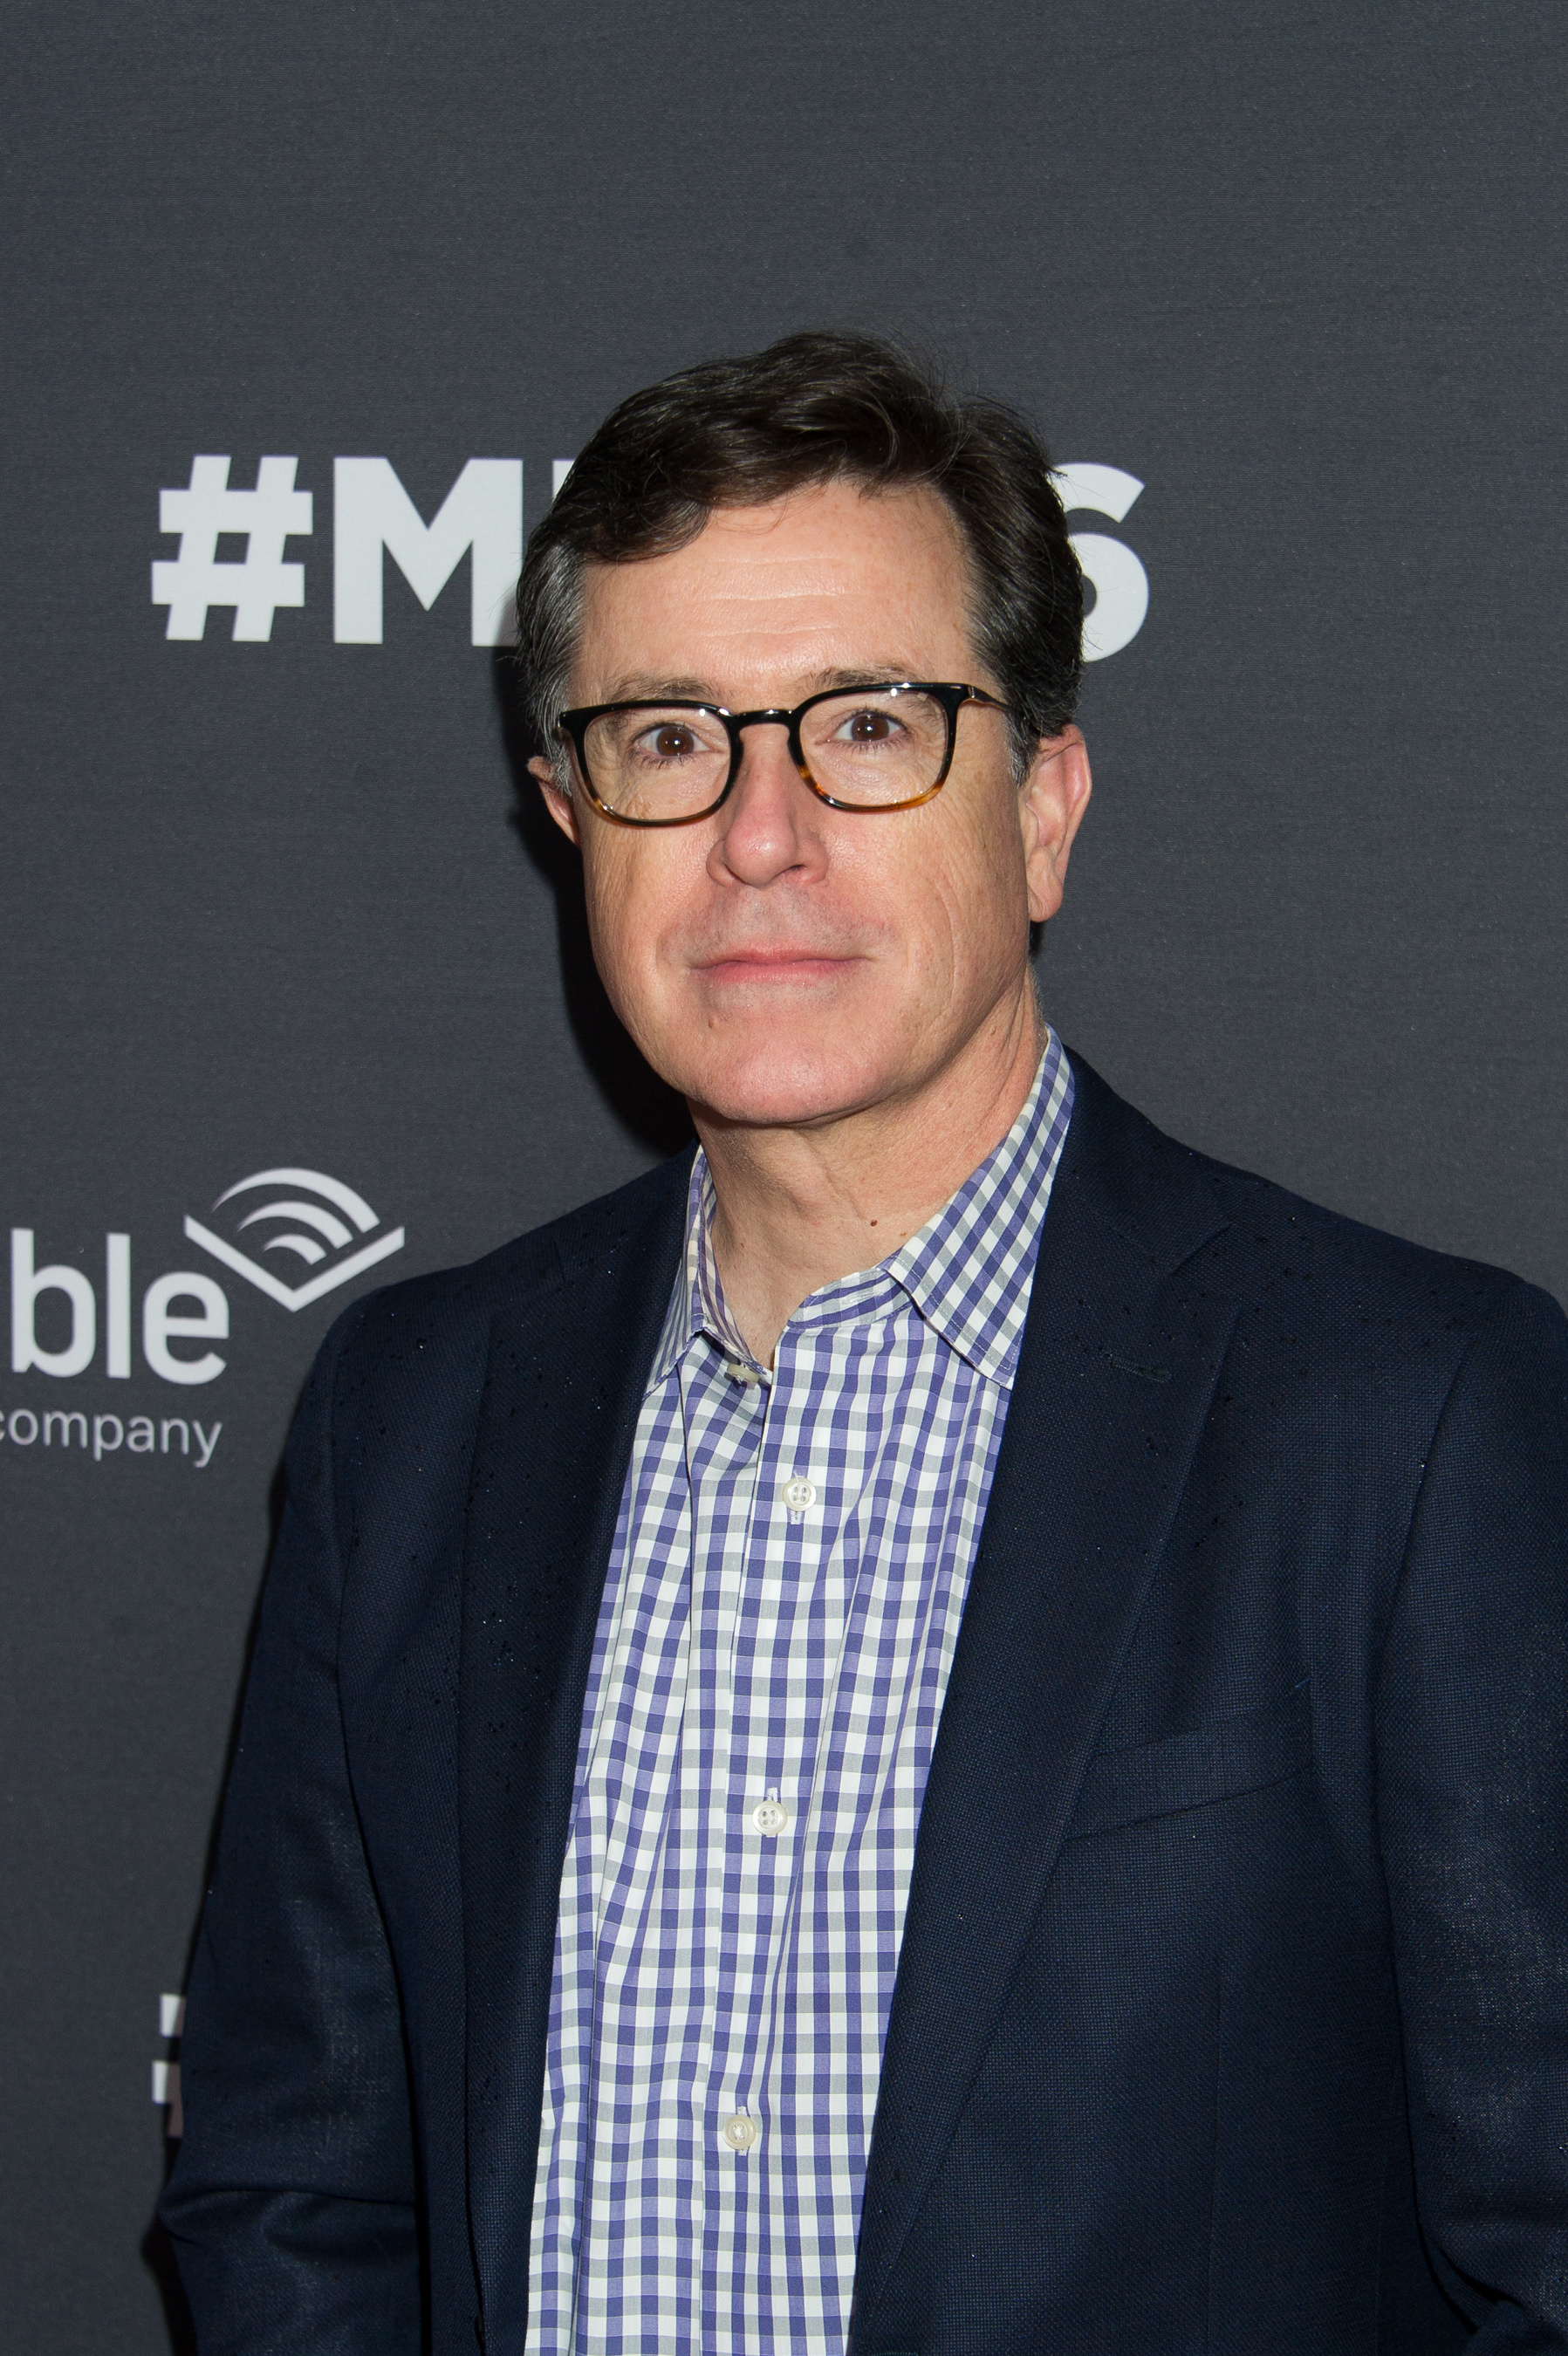 Stephen Colbert accuses the Oxford Dictionary of ripping him off